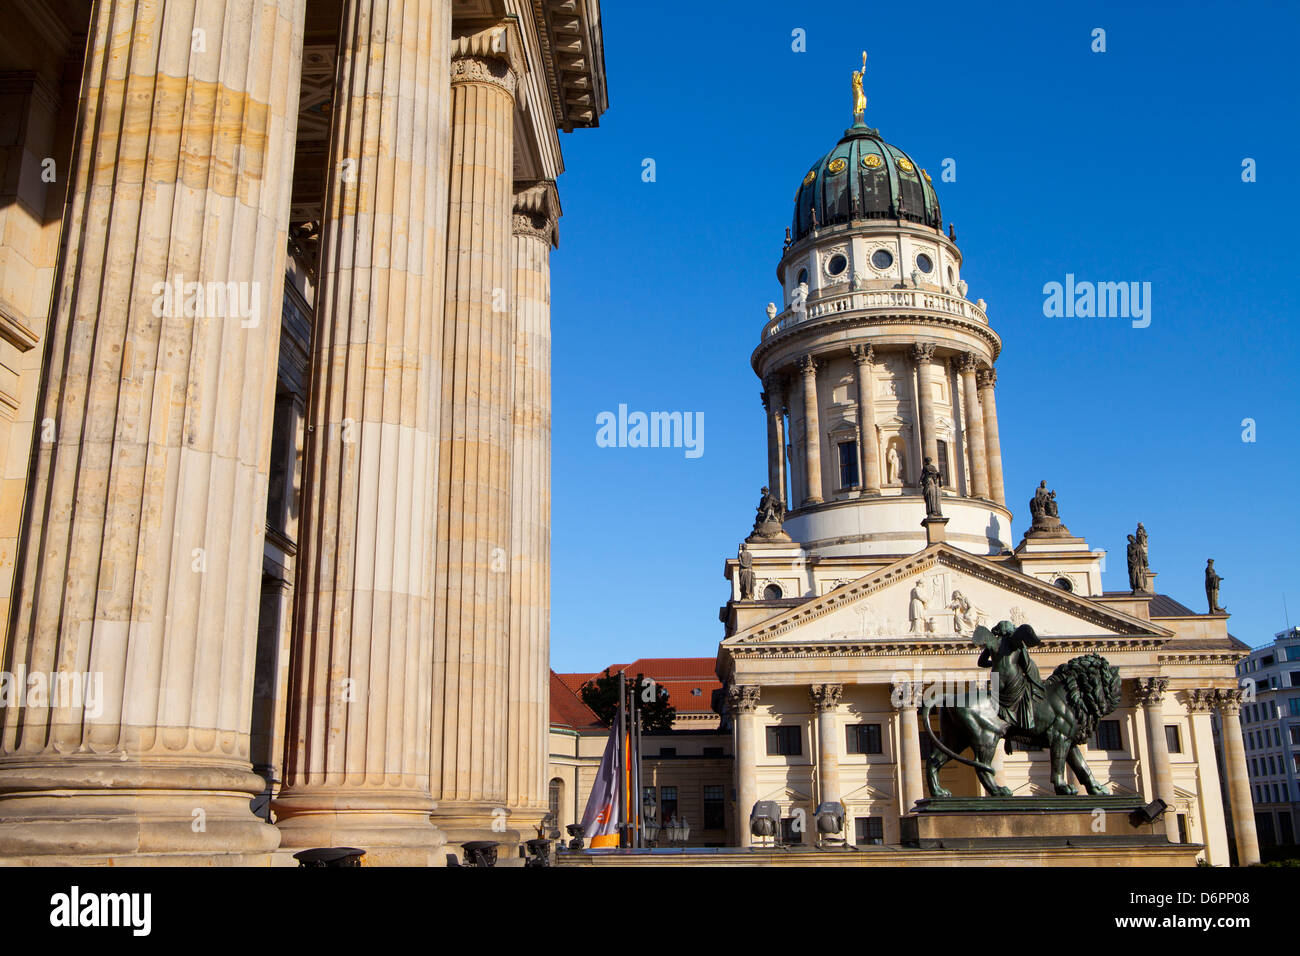 Theatre with Franzosisch (French) Church in the background, Gendarmenmarkt, Berlin, Germany, Europe Stock Photo